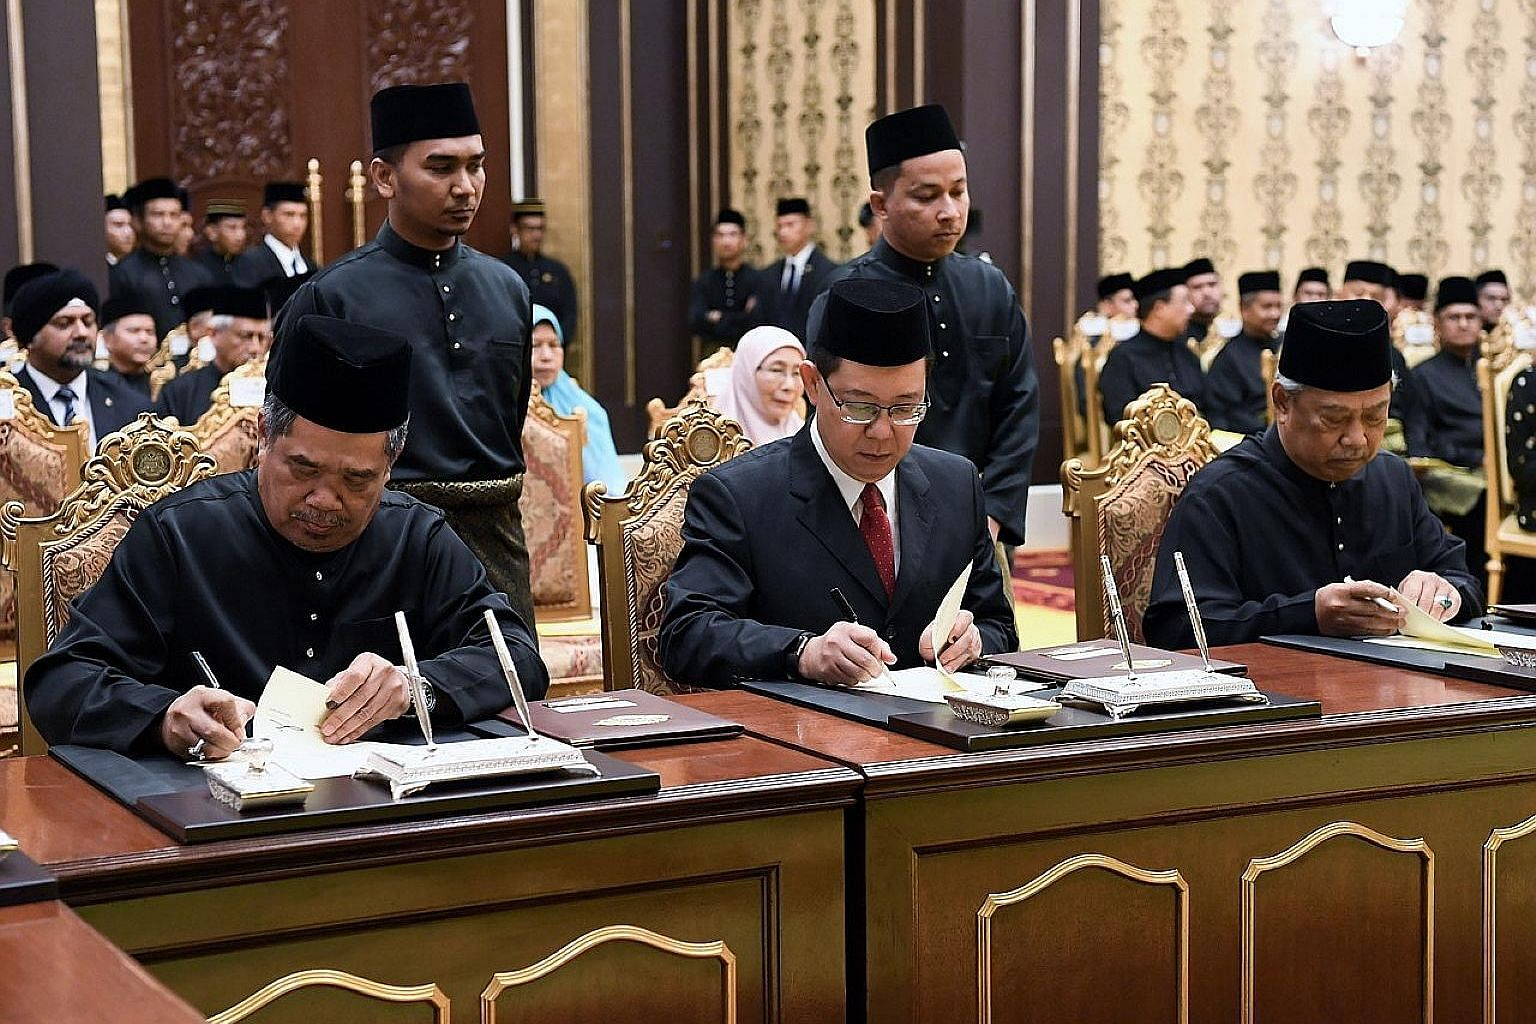 From left: Defence Minister Mohamad Sabu, Finance Minister Lim Guan Eng and Home Minister Muhyiddin Yassin signing their appointment letters at the Istana Negara in Kuala Lumpur yesterday. They were among 13 members of Tun Dr Mahathir Mohamad's core